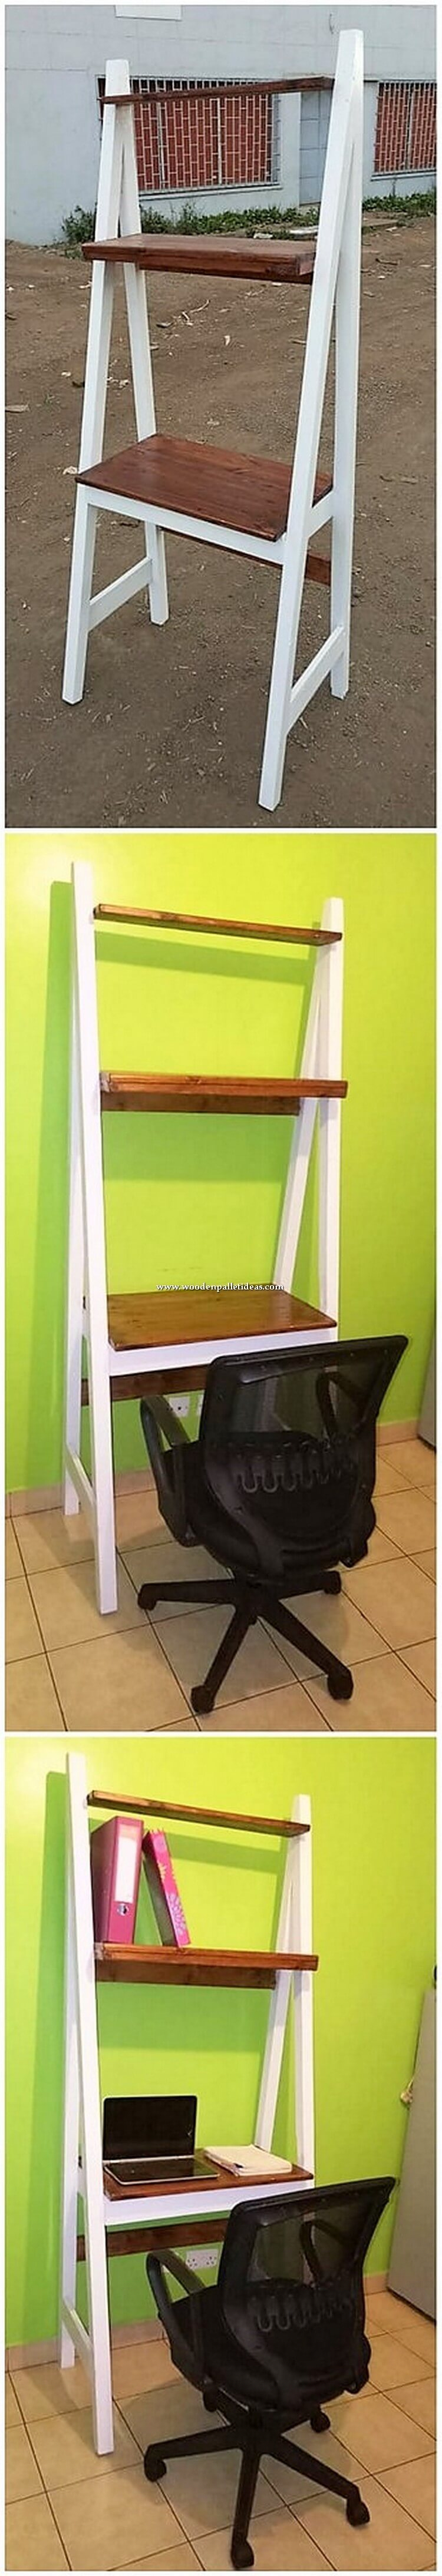 Pallet Shelving Stand or Desk Table